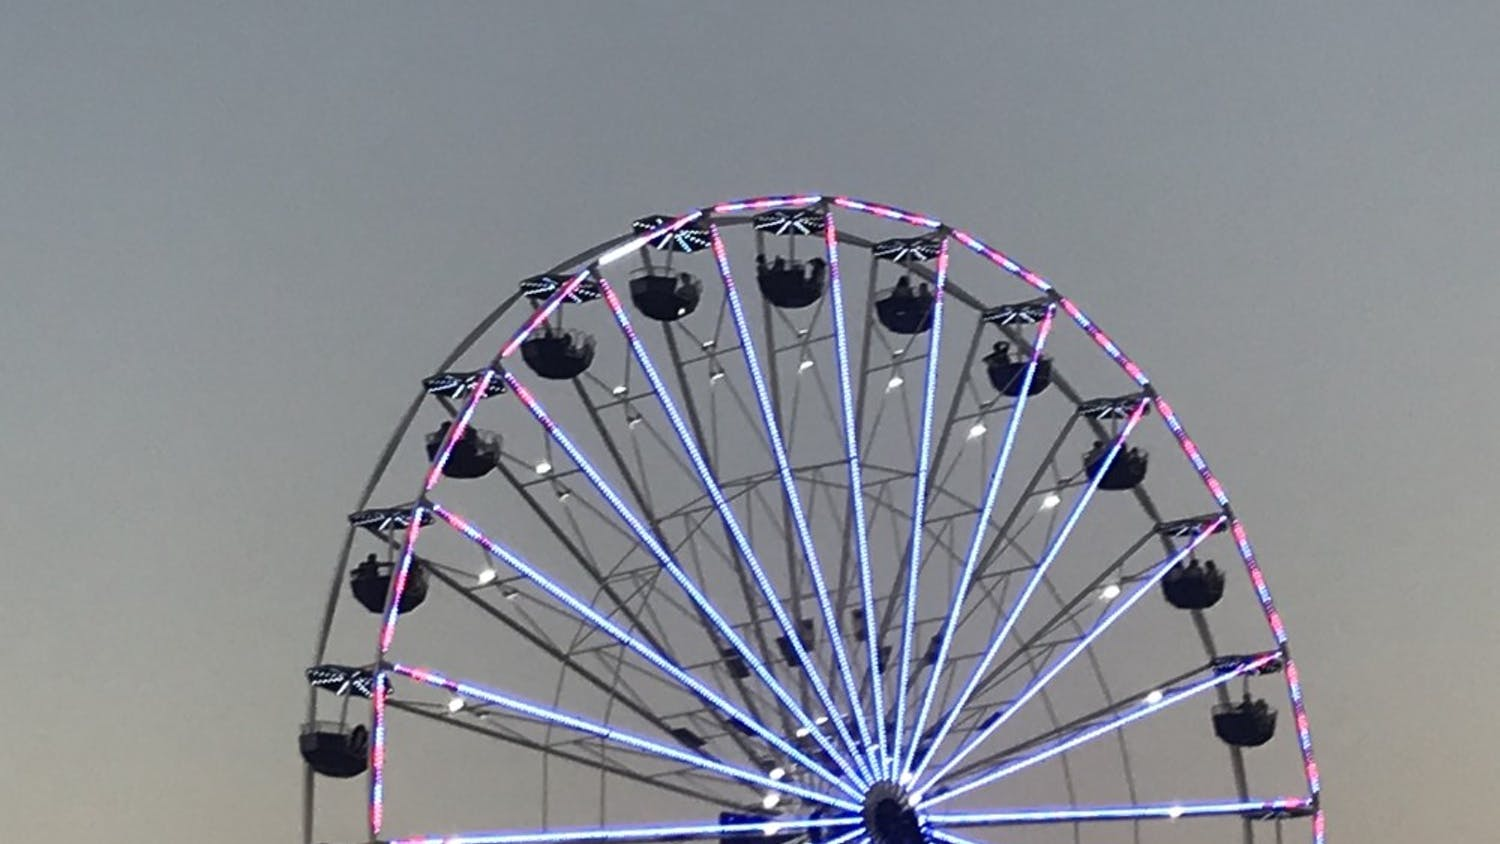 The North Carolina State Fair is celebrating its 150th anniversary this year.